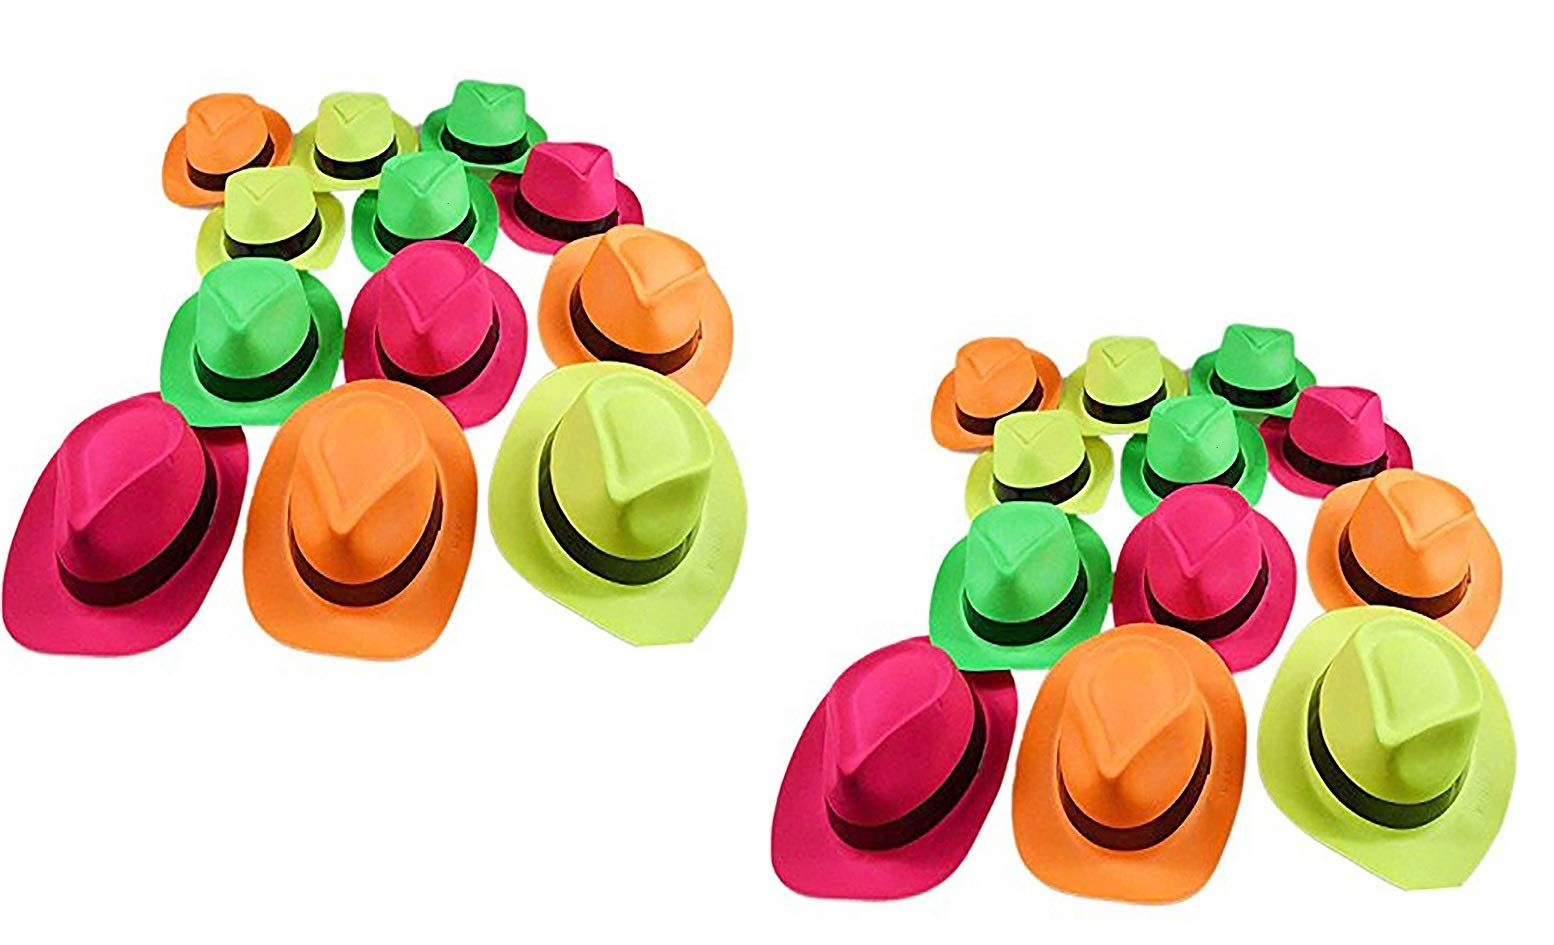 Ifavor123 Bright Neon Color Plastic Gangster Hats - Themed Party Fedora Hat Accessory (24) by Ifavor123